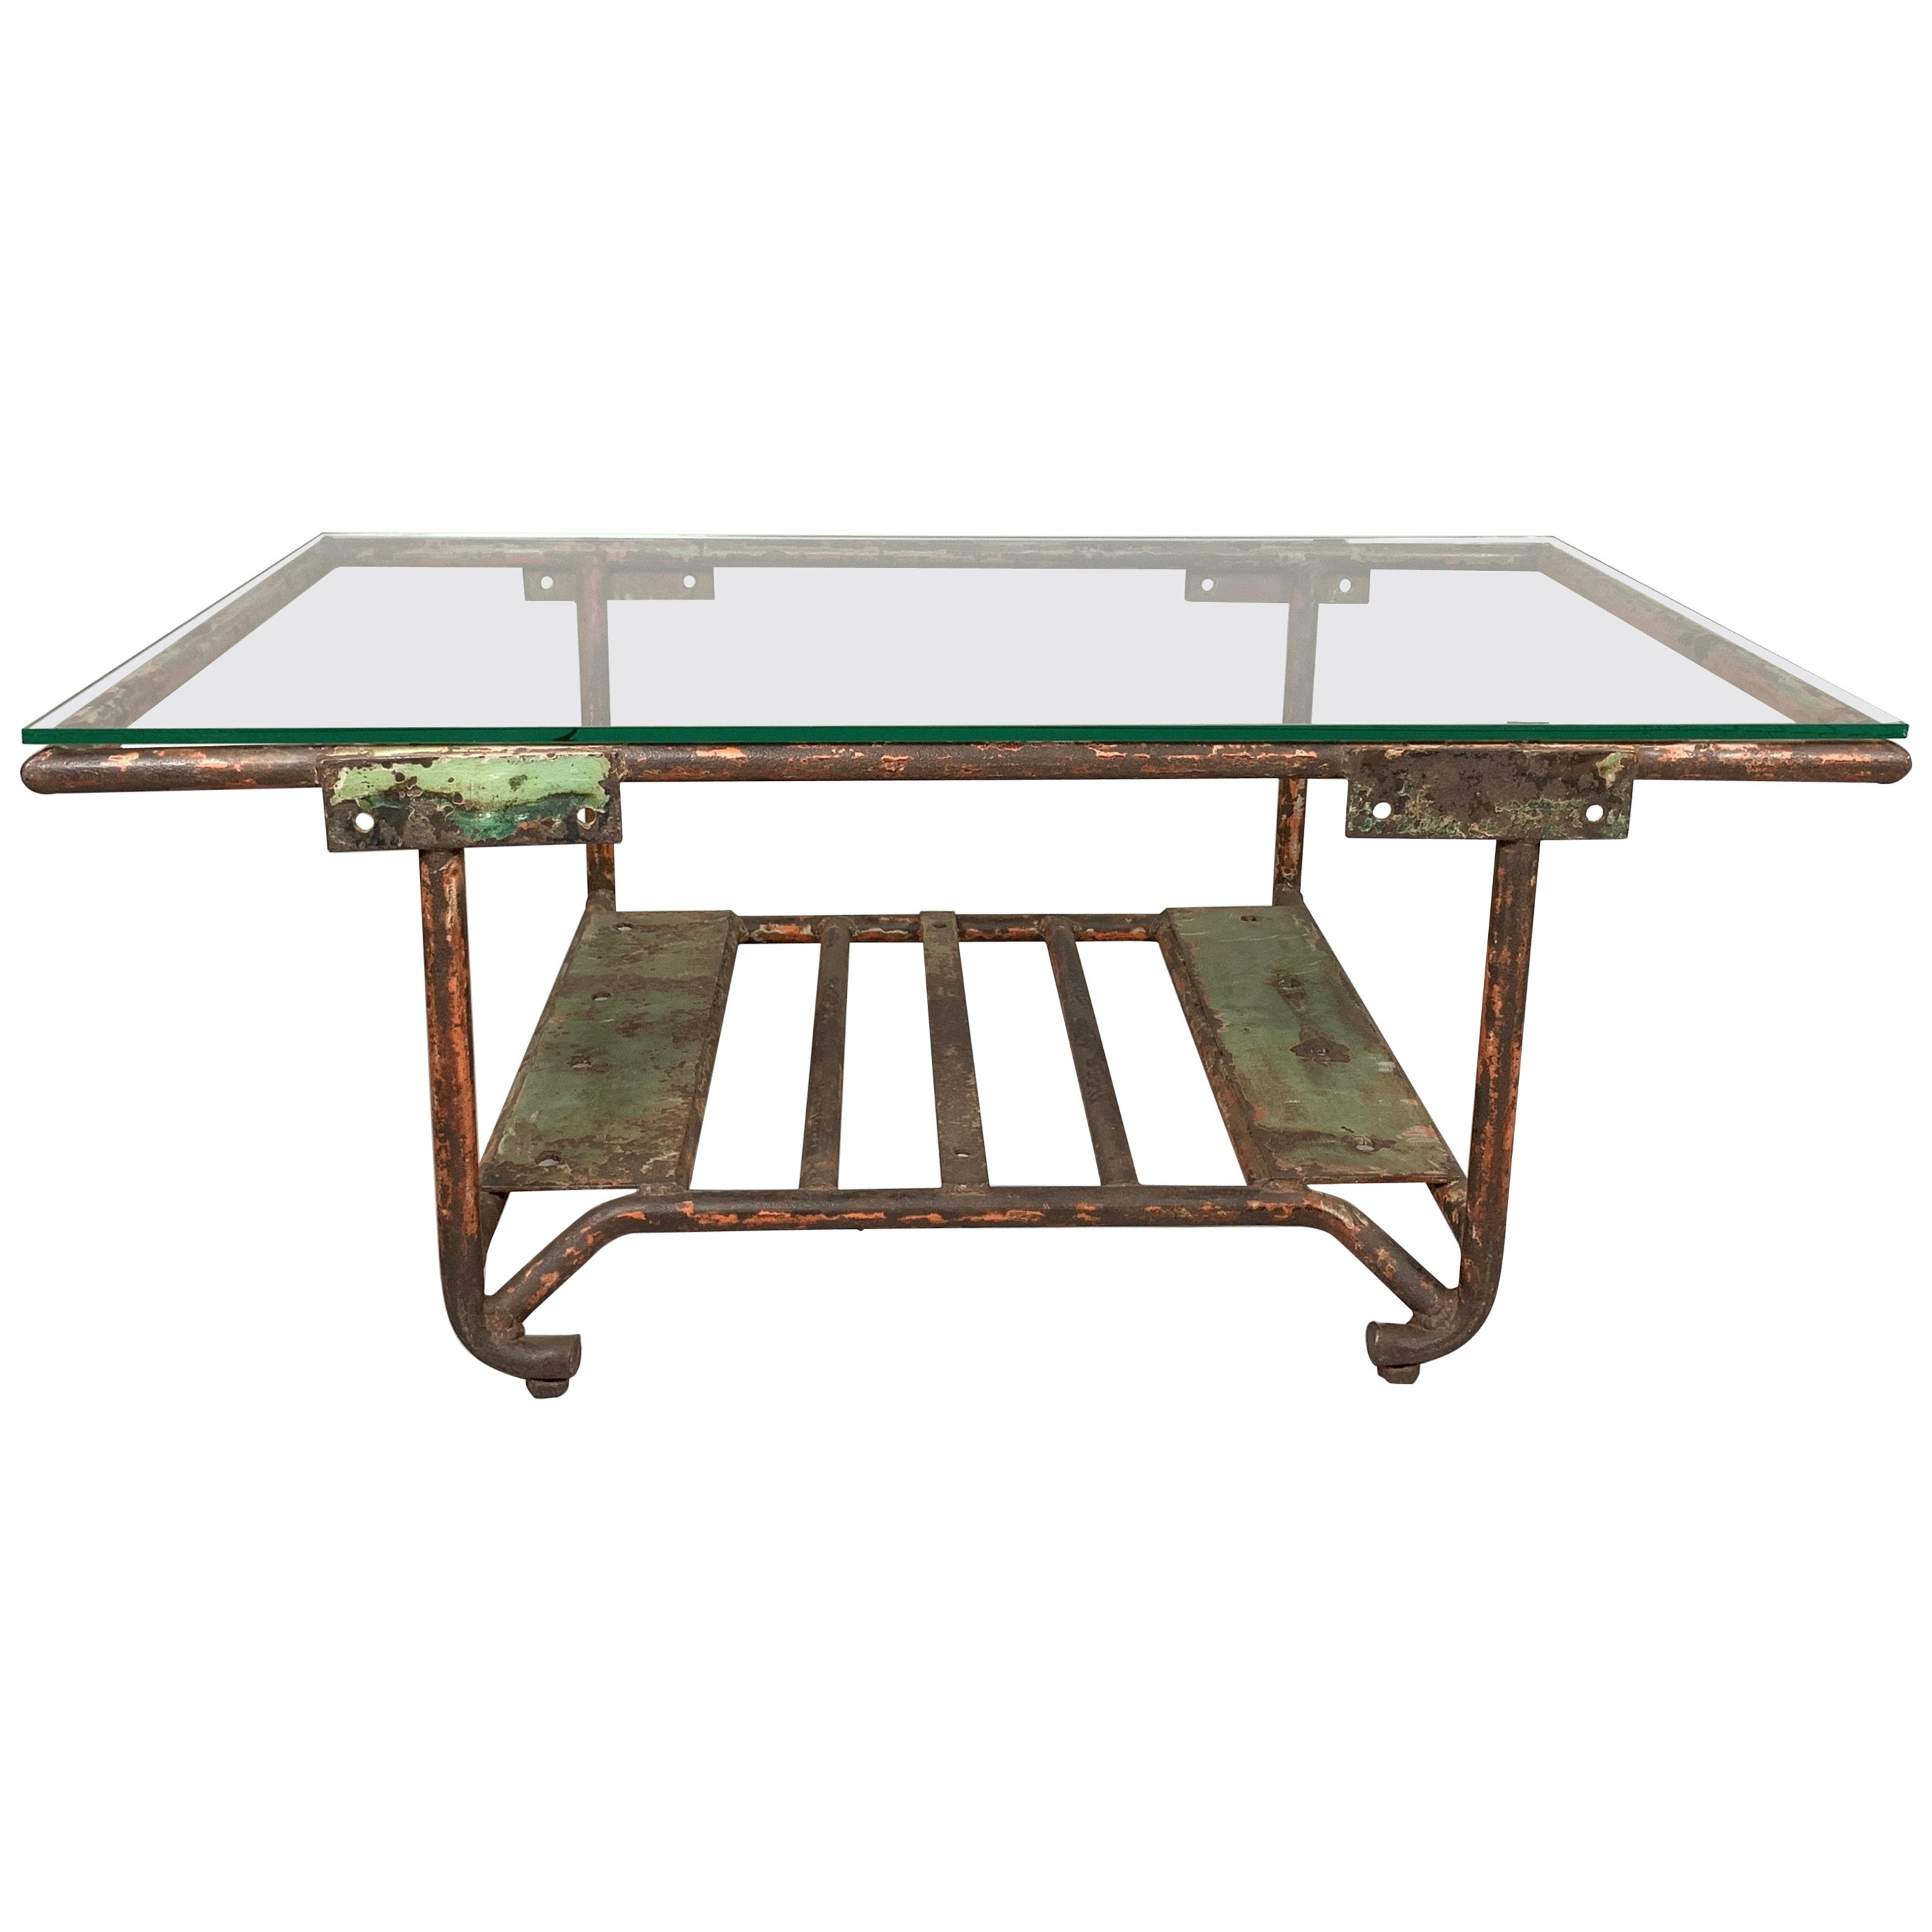 Vintage Industrial Iron and Glass Coffee Table